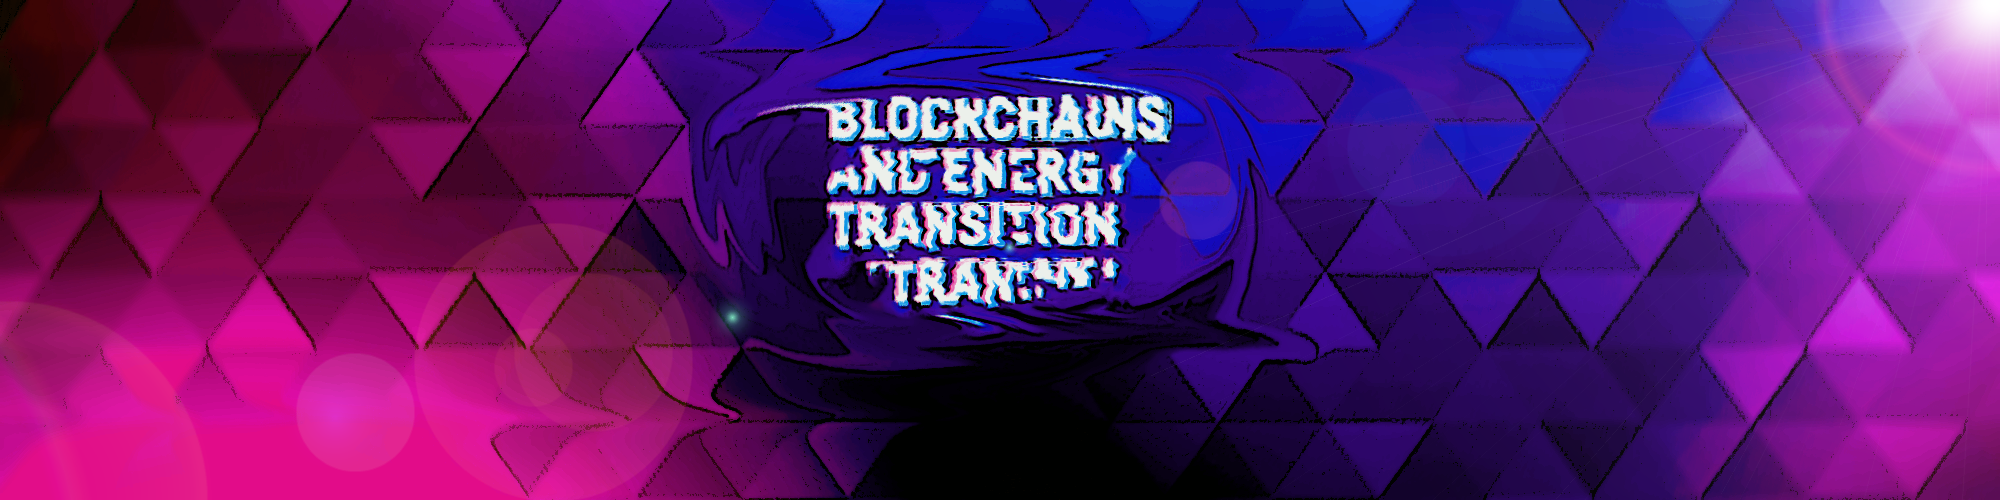 Blockchain and energy transition – what challenges for cities? Find out in our newly released publication!